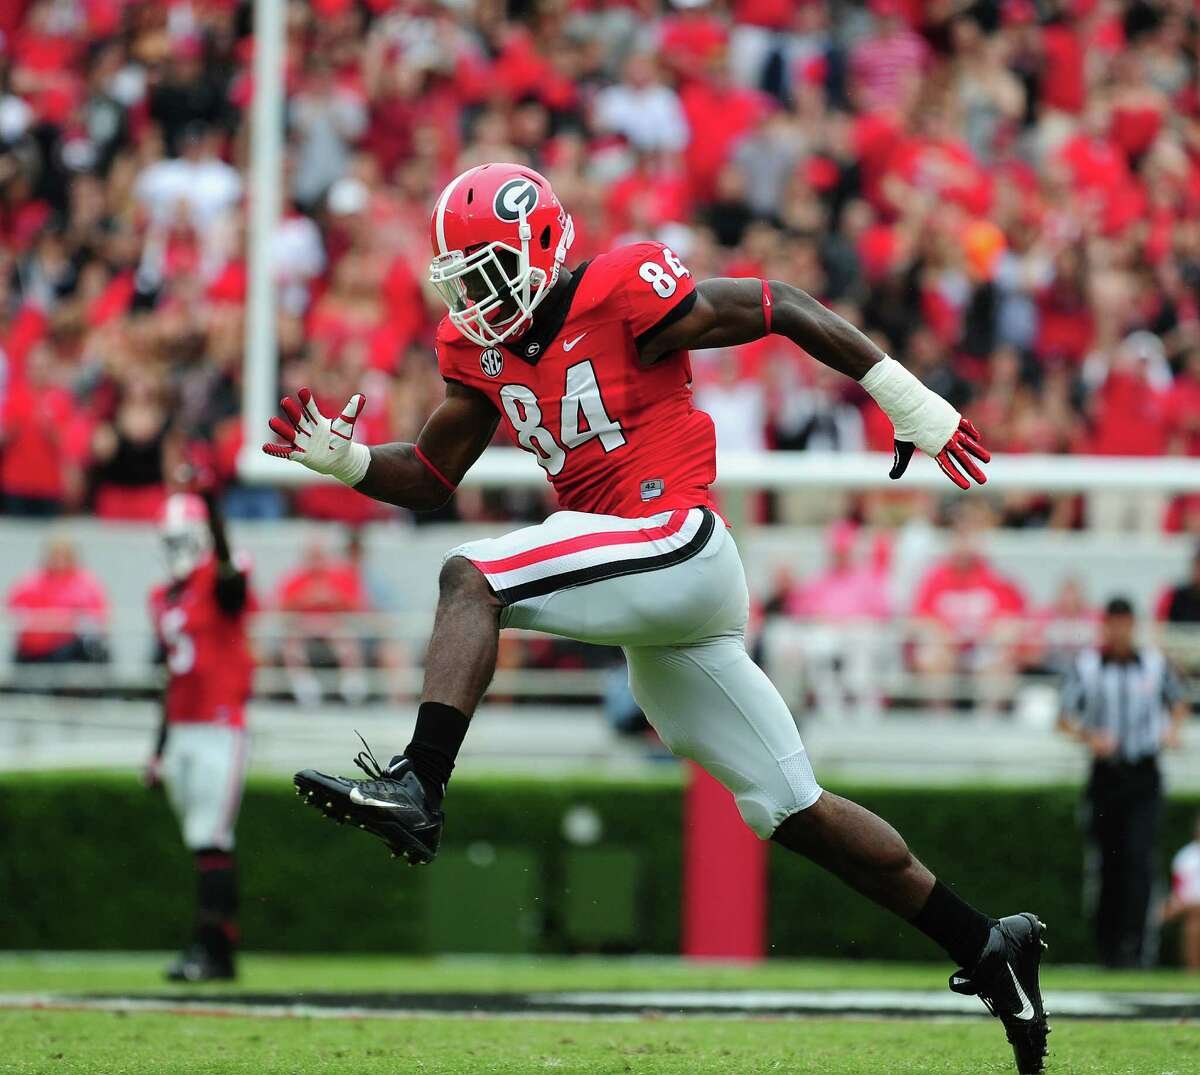 OLB Leonard Floyd, Georgia Height/Weight: 6-6/244 40-yard dash: 4.59 A tremendous athlete best suited as an edge rusher in a 3-4, the same scheme he played in college. He's got good size and speed. He's agile in space. His explosive first step catches tackles off balance. Strong at the point of attack. He can bend and dip when rushing the quarterback. Has a good closing burst on the passer. He has to improve pass coverage. He should be drafted among the top 20.